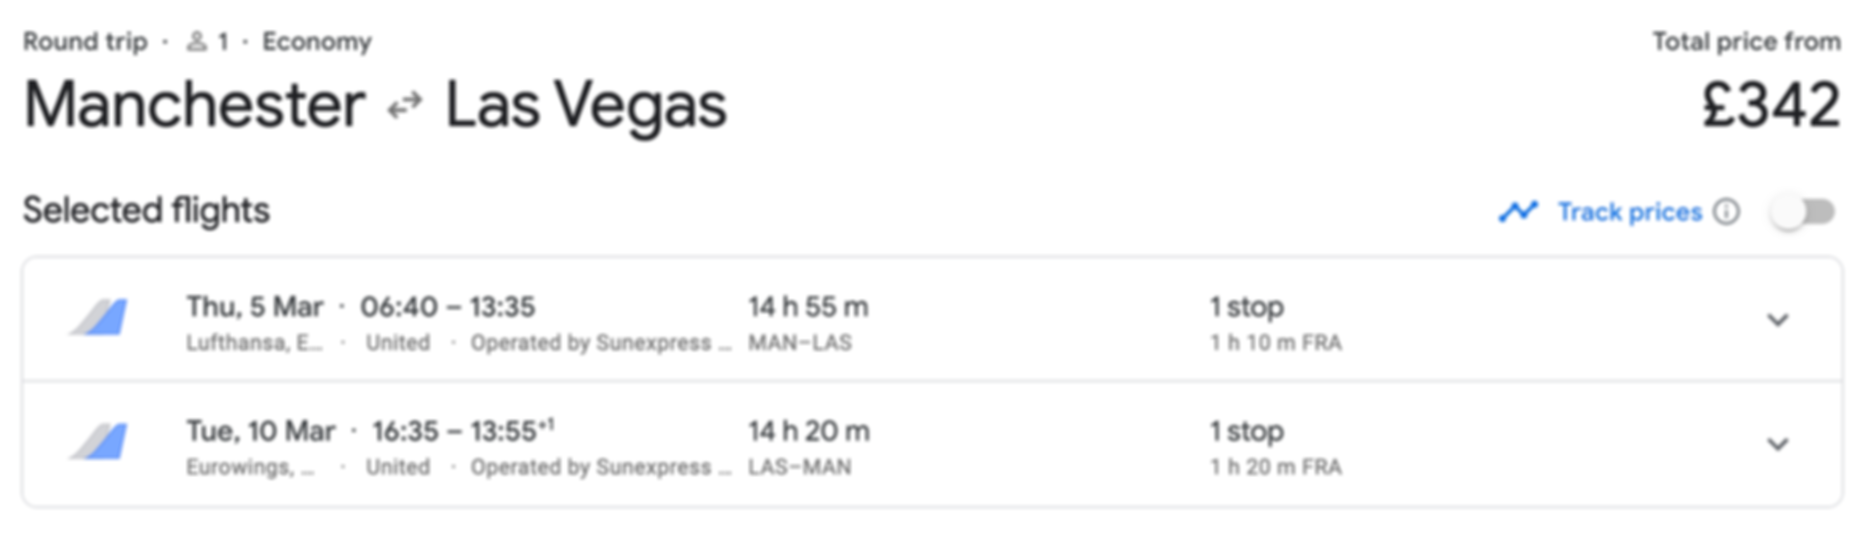 Las Vegas from Manchester for just £342 return